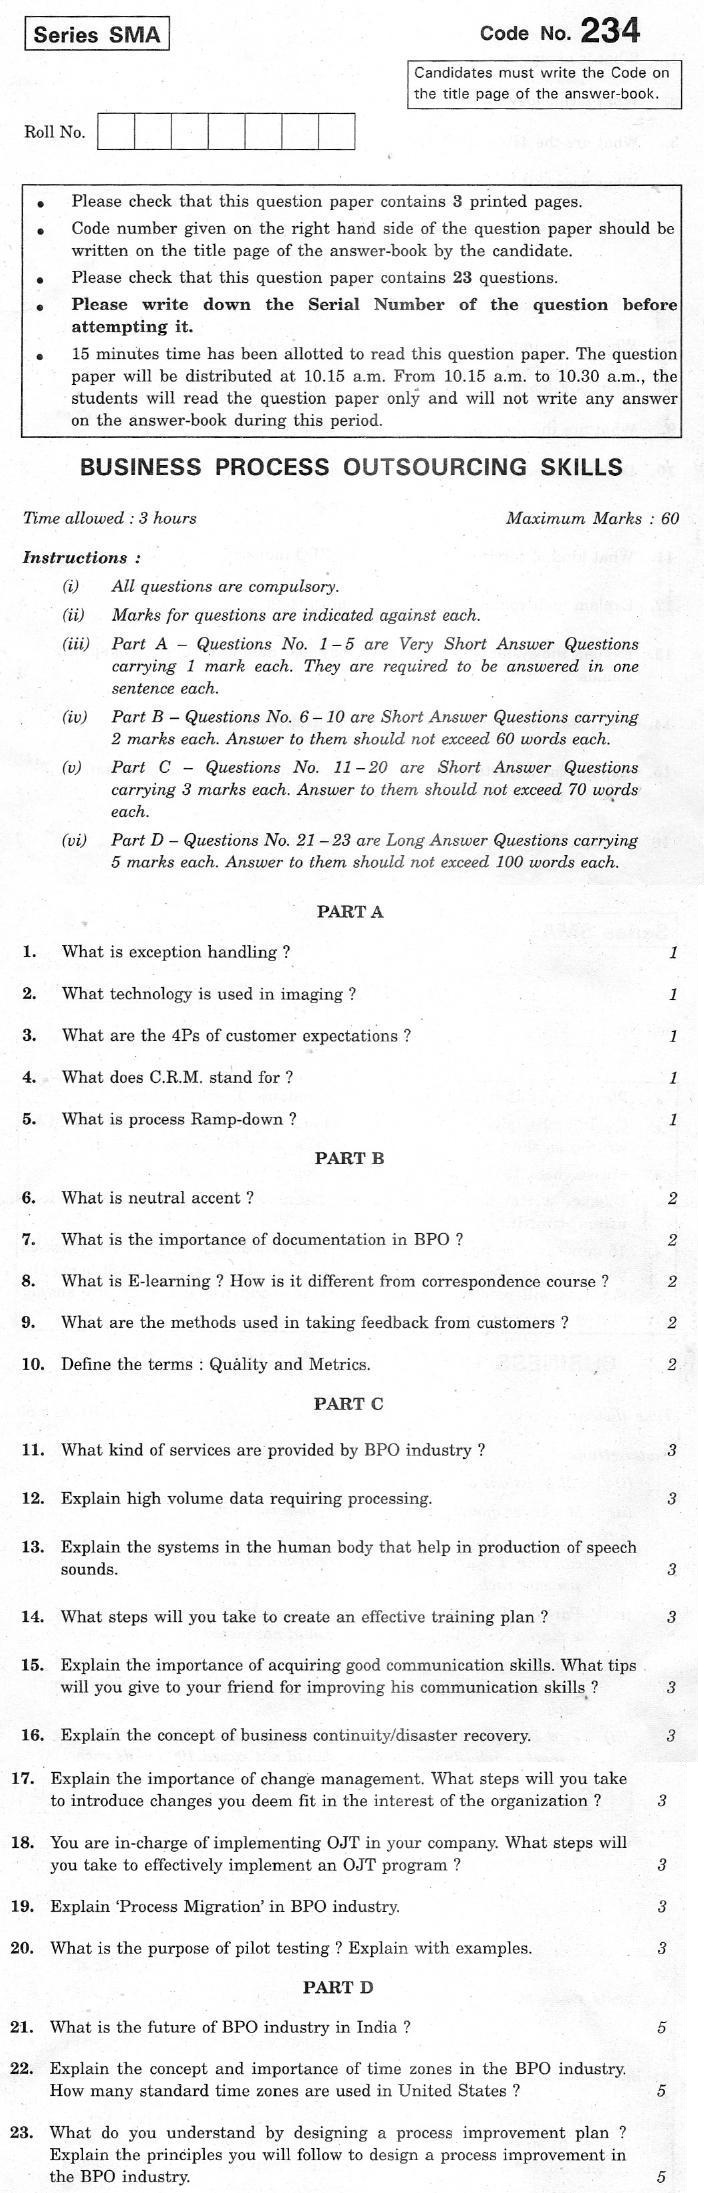 CBSE Class XII Previous Year Question Paper 2012 Business Process Outsourcing Skills